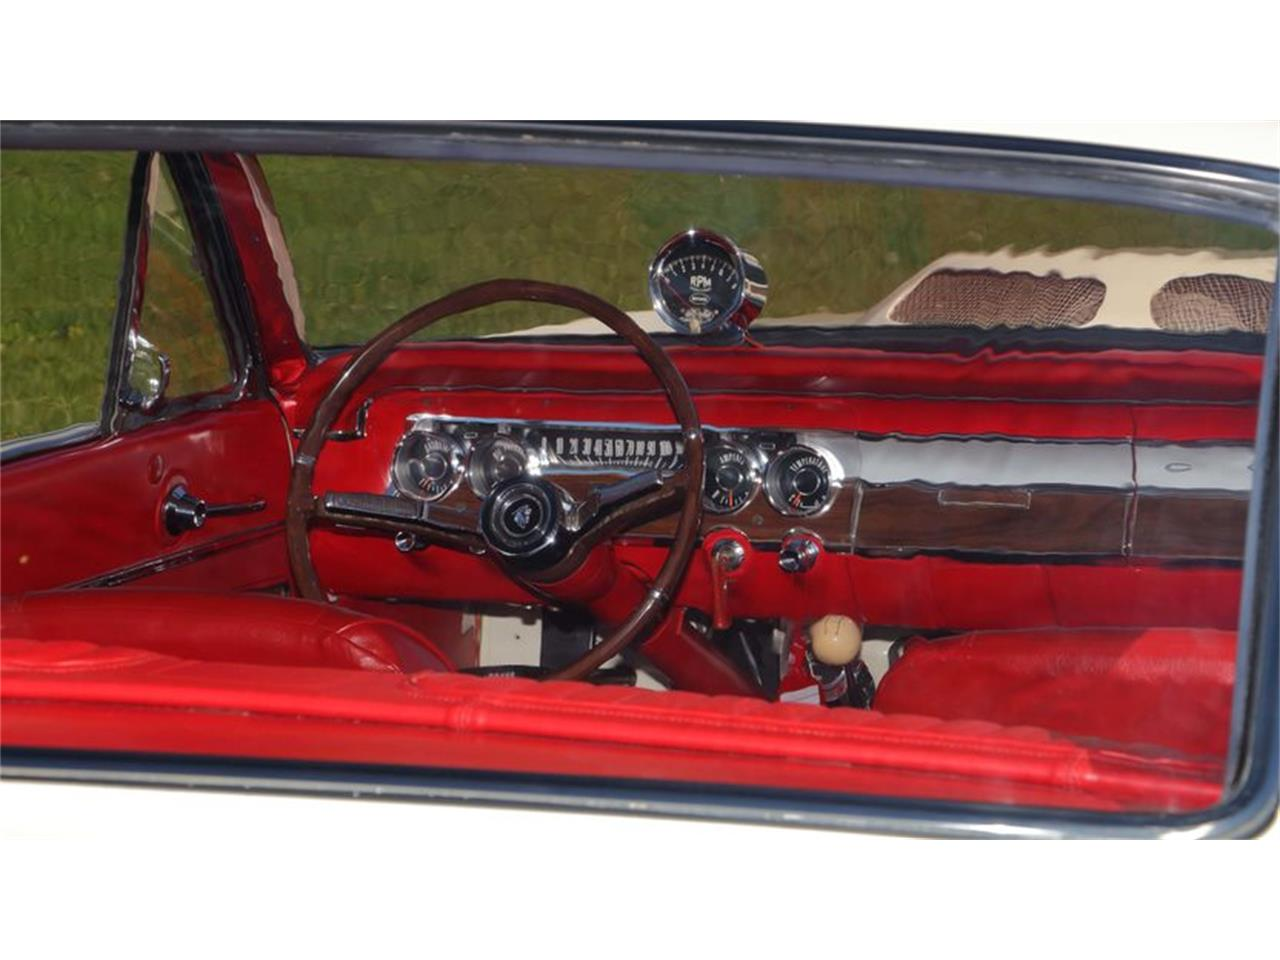 Large Picture of 1964 Mercury Comet located in Florida Auction Vehicle Offered by Mecum Auctions - JVZG